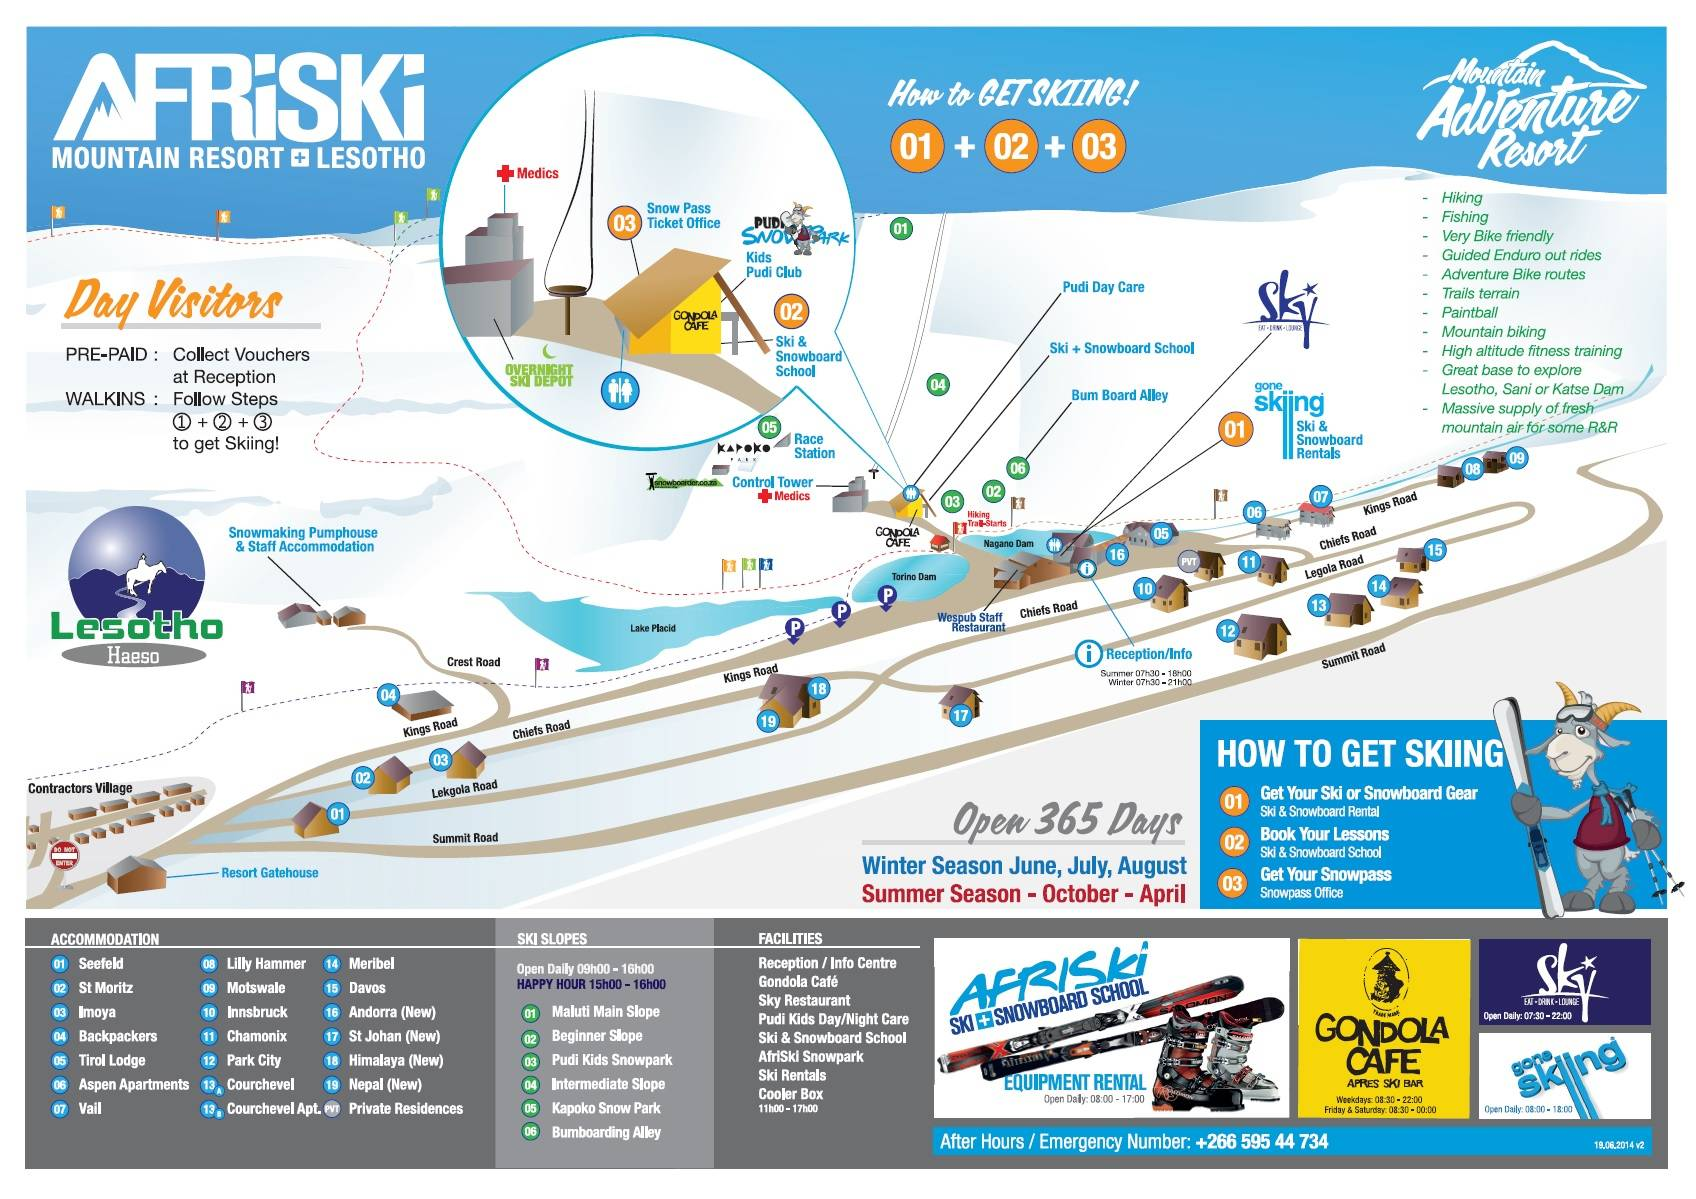 Afriski Mountain Resort Piste / Trail Map